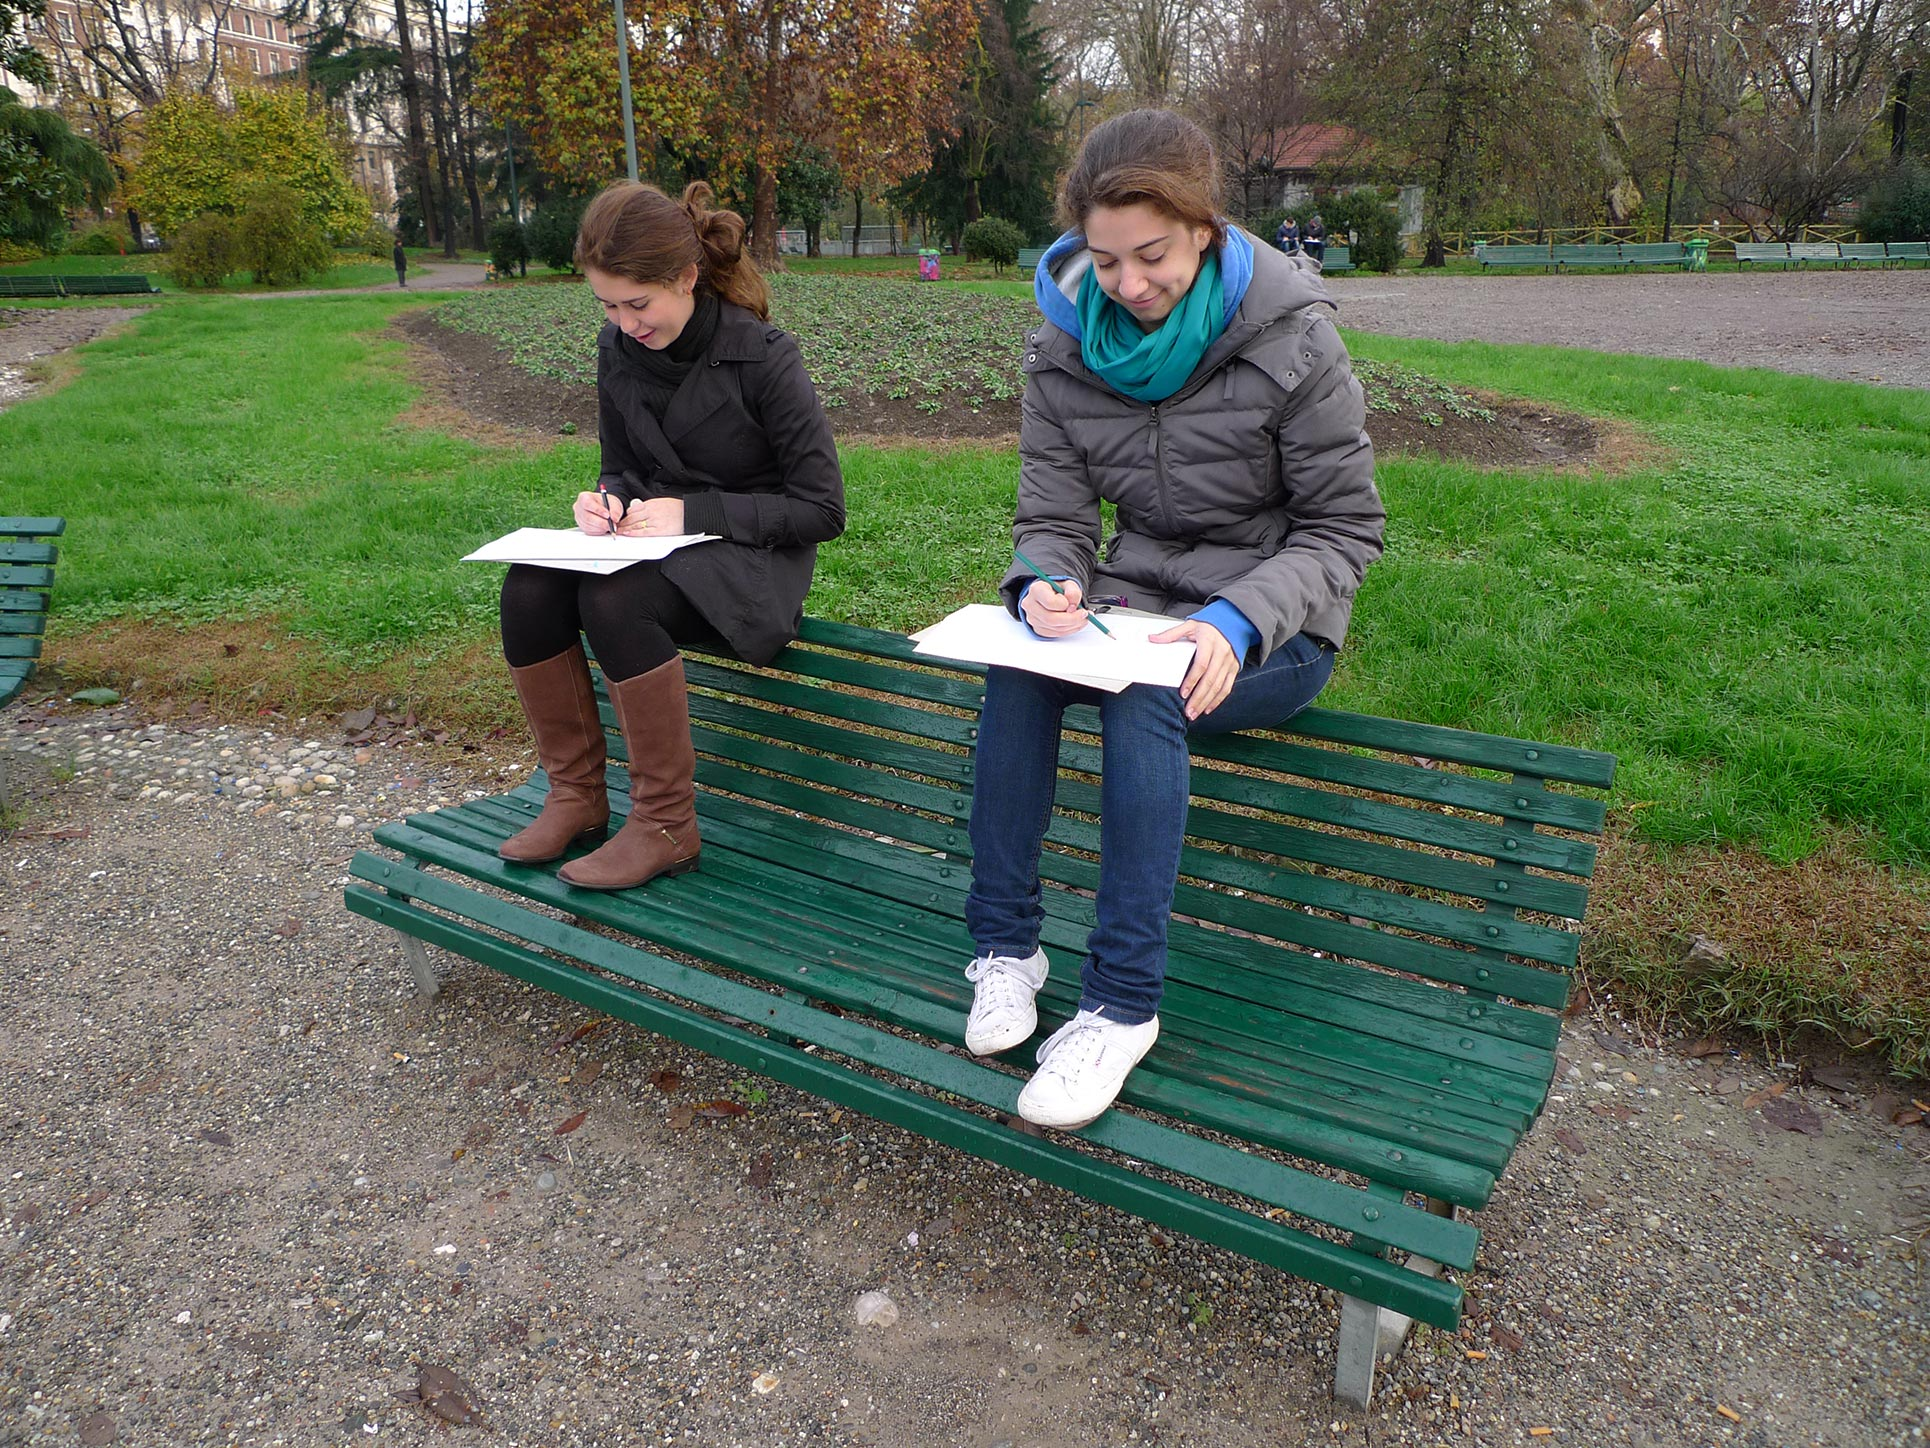 Drawing in the park (Photo: Barbara Fässler)